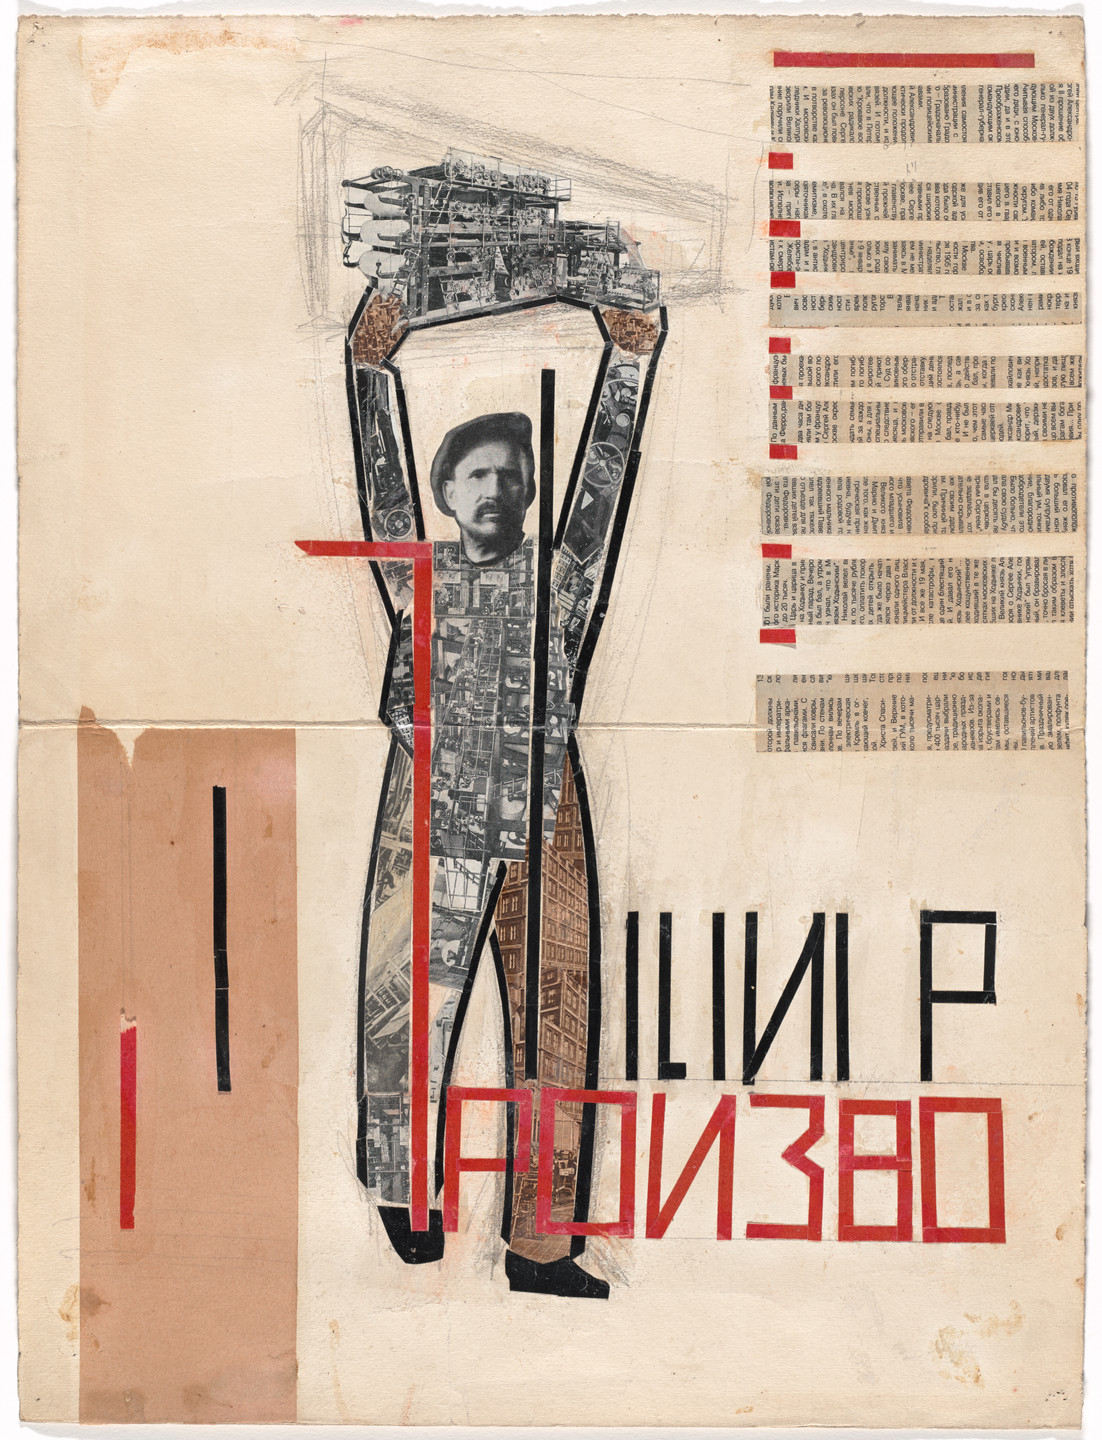 Vasili Elkin. Design related to poster for the magazine Poligraficheskoe proizvodstvo (Polygraphic Production). c. 1928